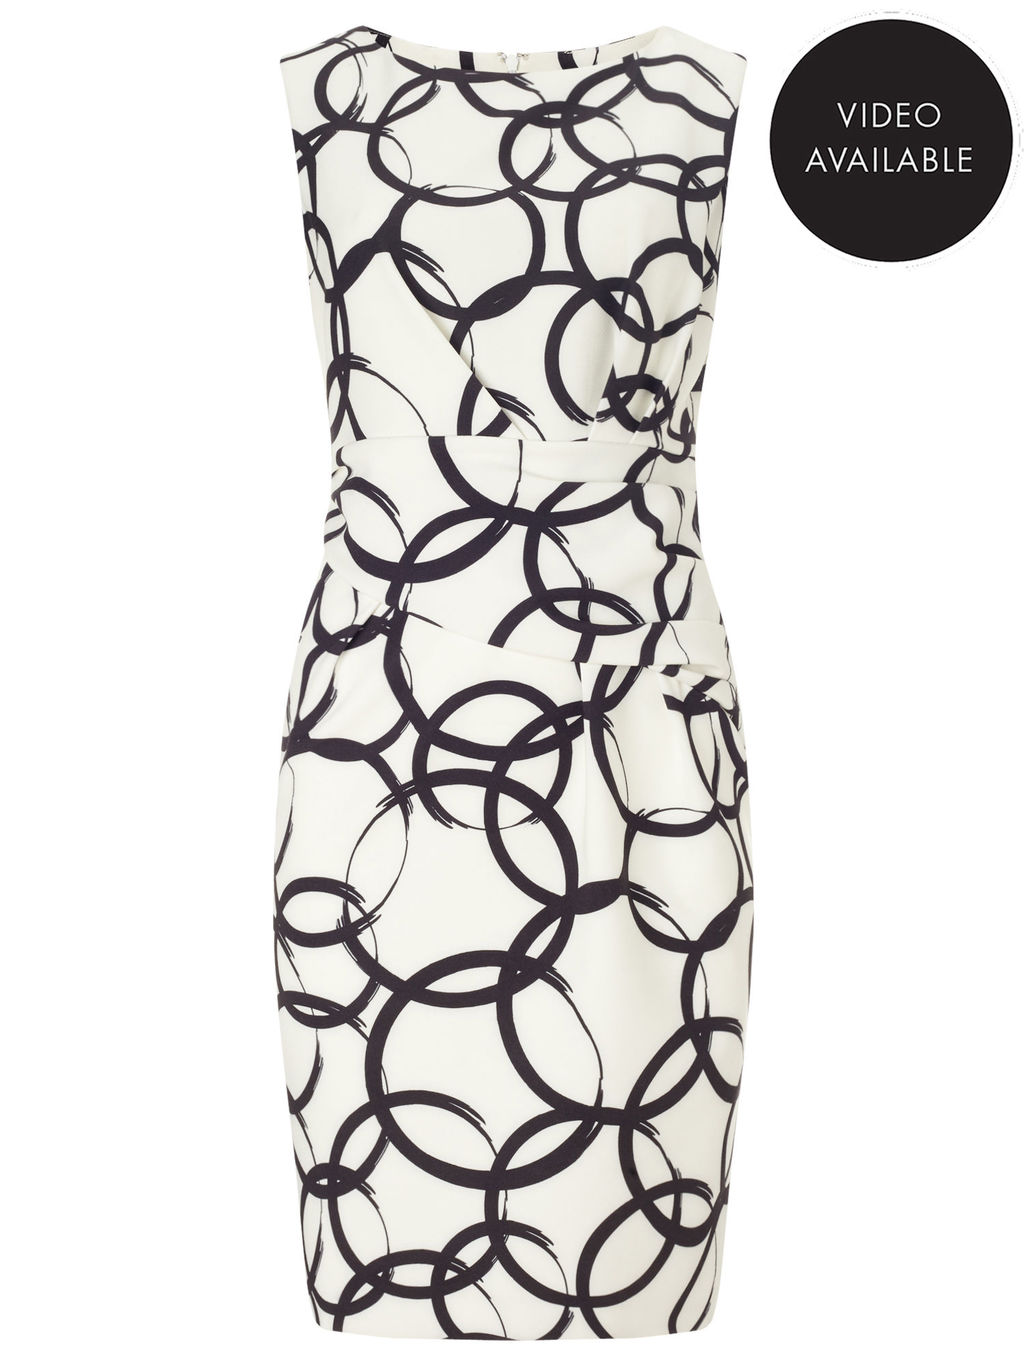 Jeff Banks Circle Print Dress - style: shift; neckline: round neck; fit: tailored/fitted; sleeve style: sleeveless; waist detail: fitted waist; predominant colour: white; secondary colour: black; occasions: evening, occasion; length: just above the knee; fibres: polyester/polyamide - stretch; sleeve length: sleeveless; trends: monochrome; pattern type: fabric; pattern size: big & busy; pattern: patterned/print; texture group: woven light midweight; season: s/s 2016; wardrobe: event